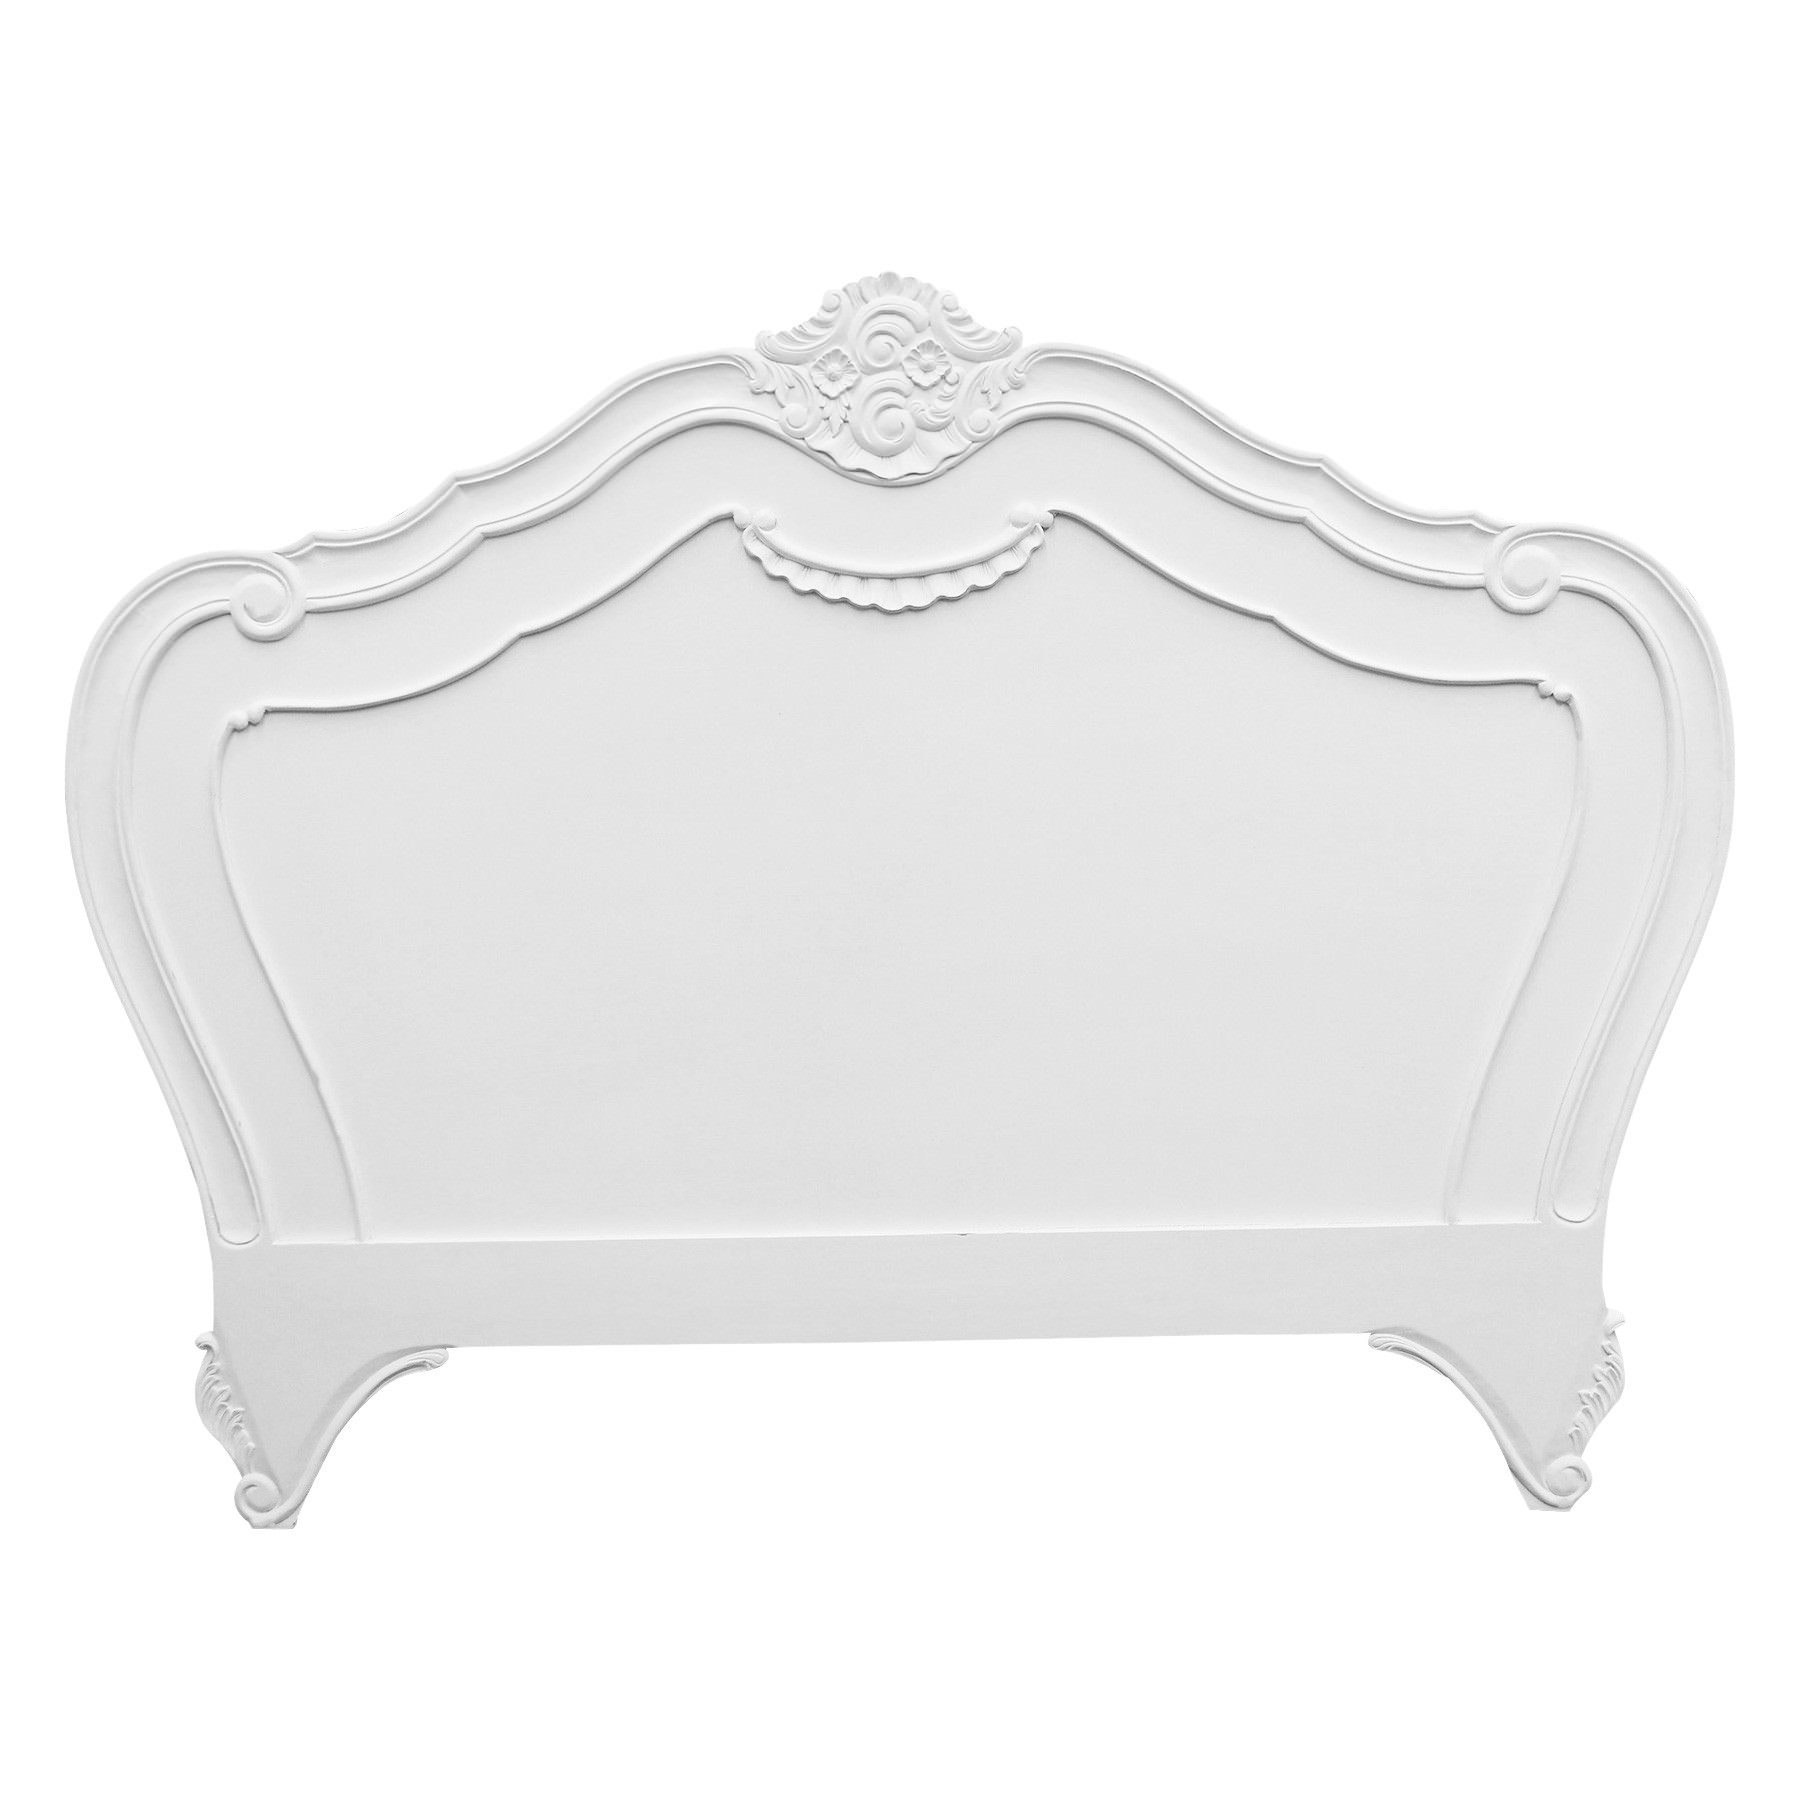 Challuy Hand Crafted Mahogany King Size Headboard, White